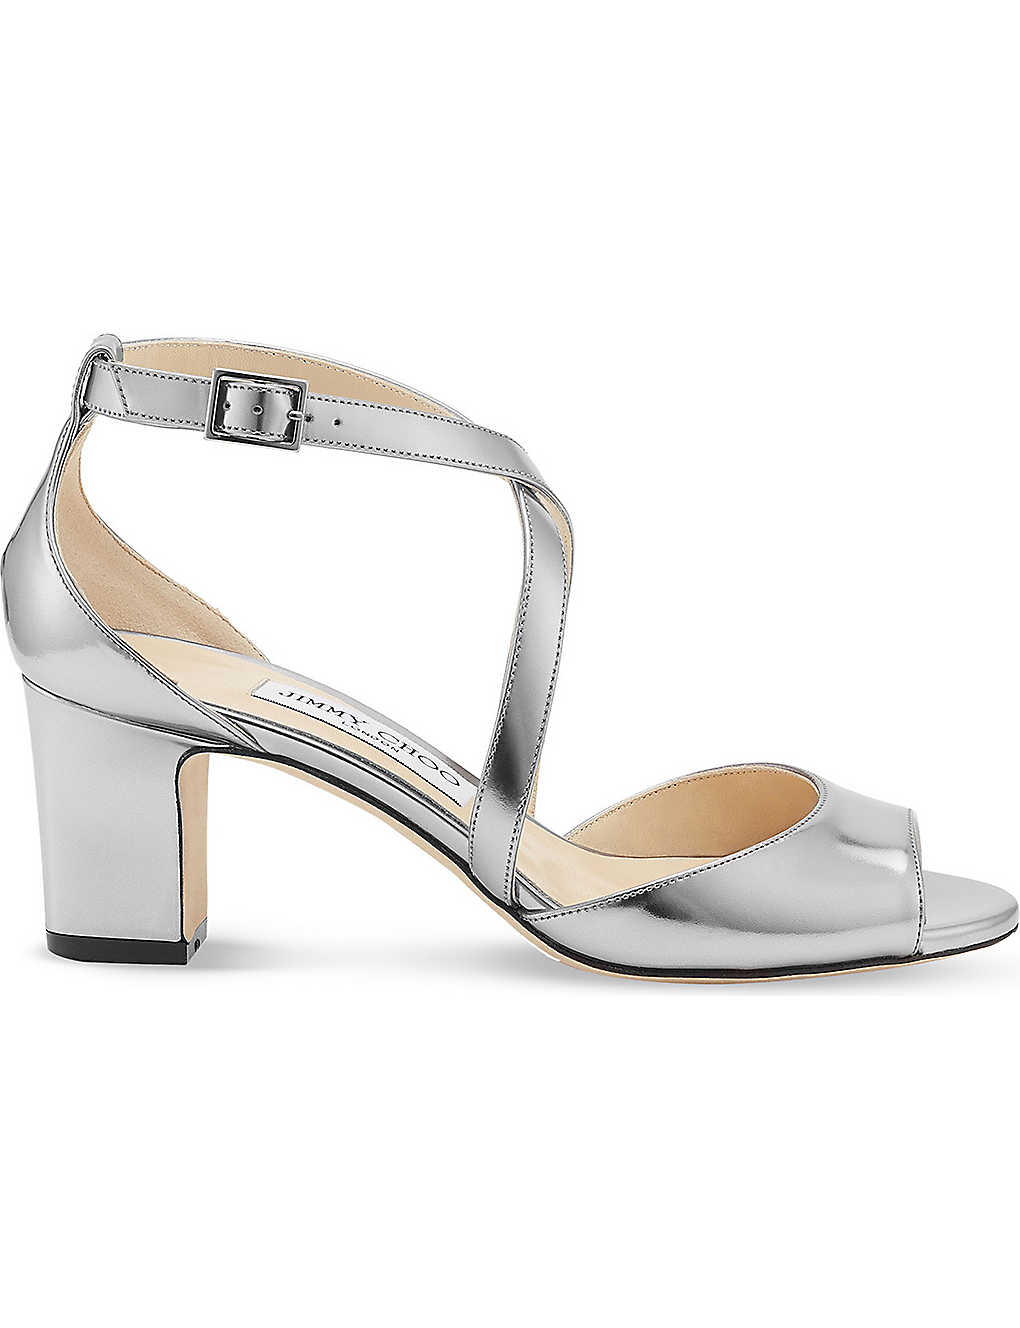 358dda3738f6 JIMMY CHOO - Carrie 65 metallic-leather heeled sandals